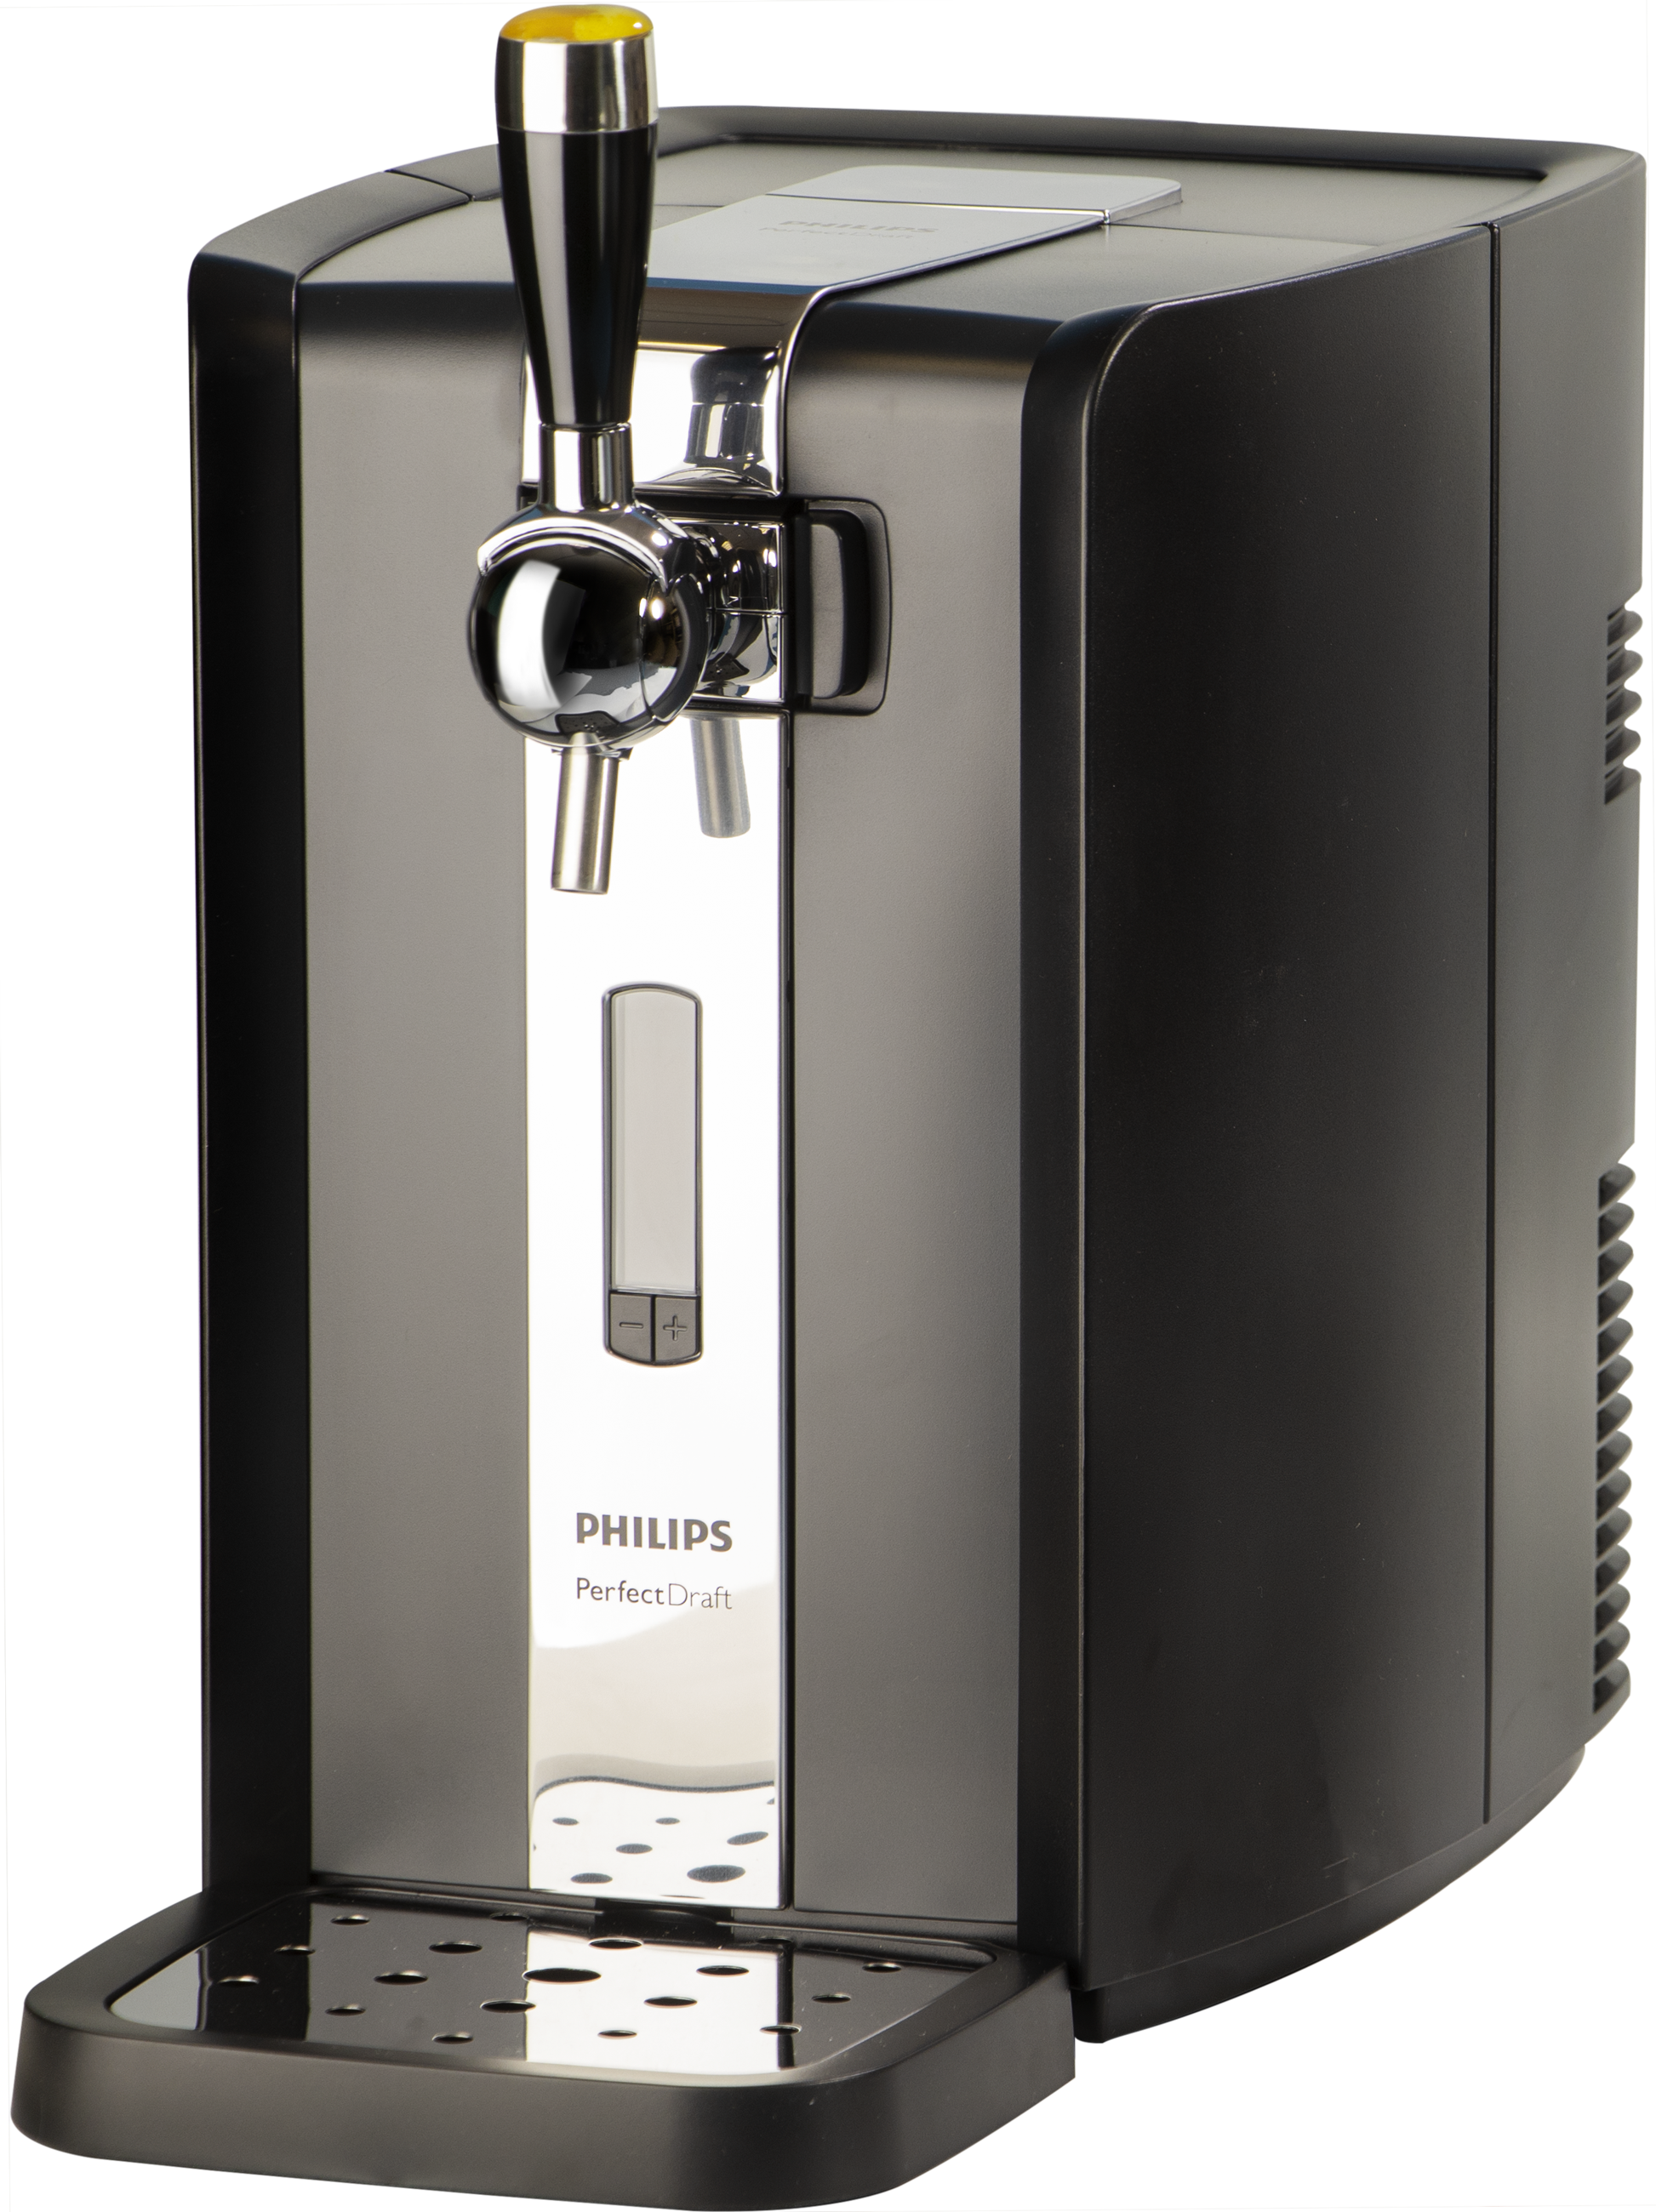 PHILIPS POMPE POUR TIREUSE A BIERE PHILIPS PERFECTDRAFT